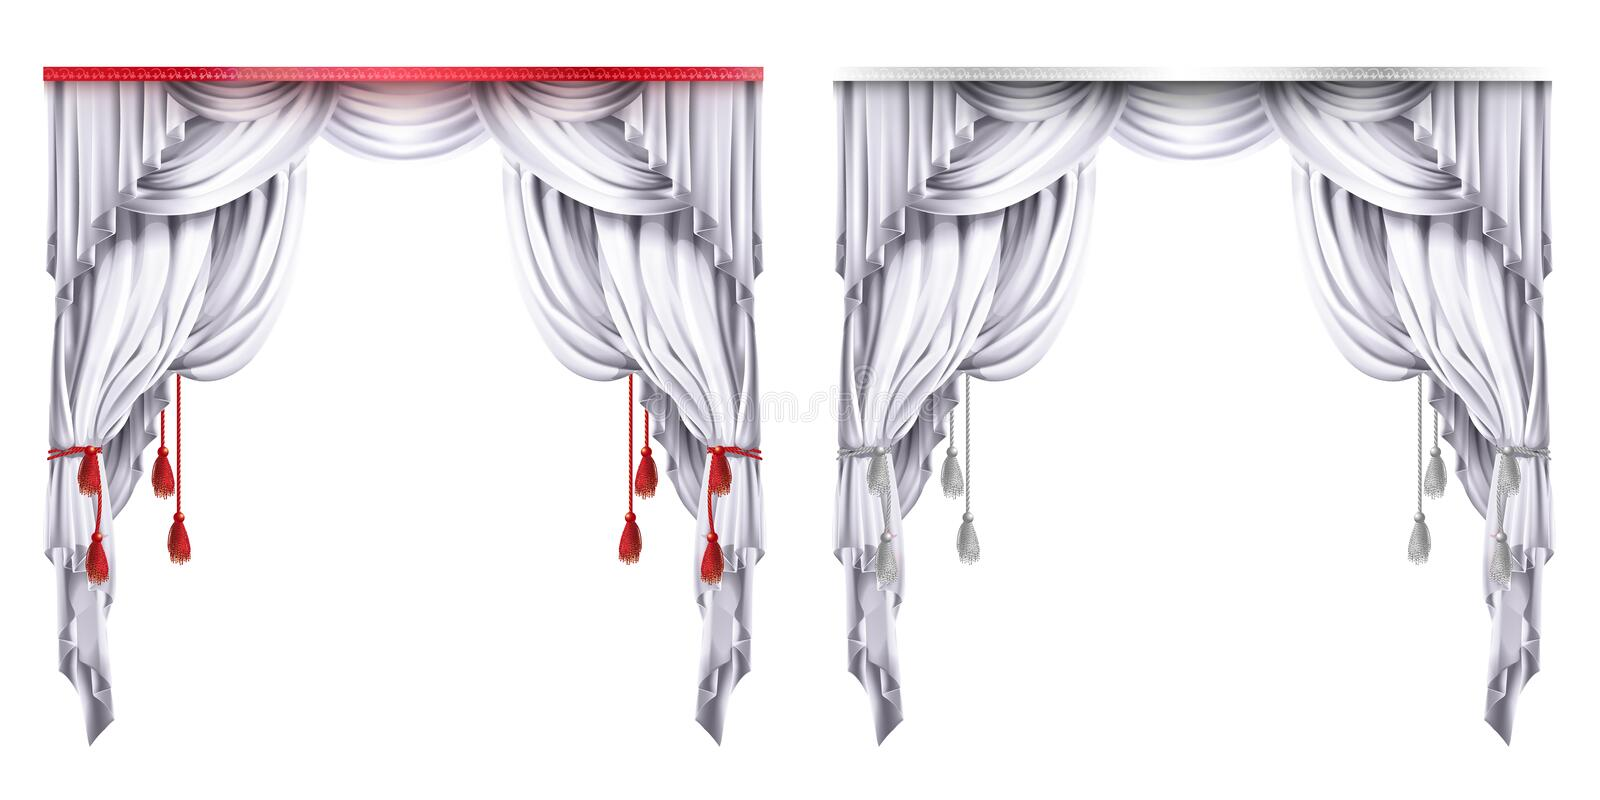 Silk, velvet drapes with red or white tassels. Theatrical curtain with folds.Concept for presentation, decoration. Silk, velvet drapes with red or white tassels vector illustration